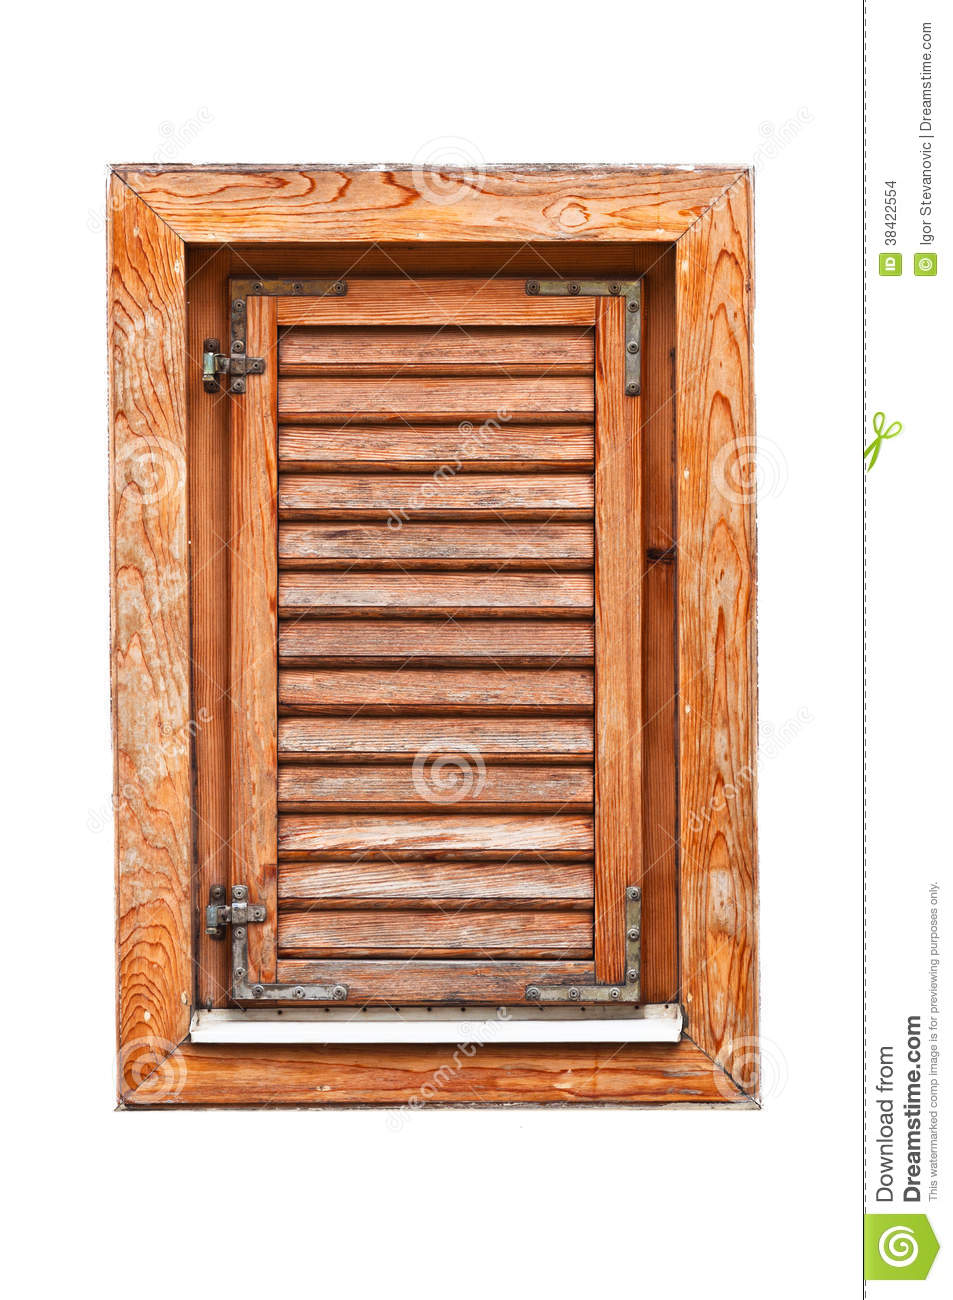 Wood Shutters Closed : Italian style wooden window with closed shutter blinds